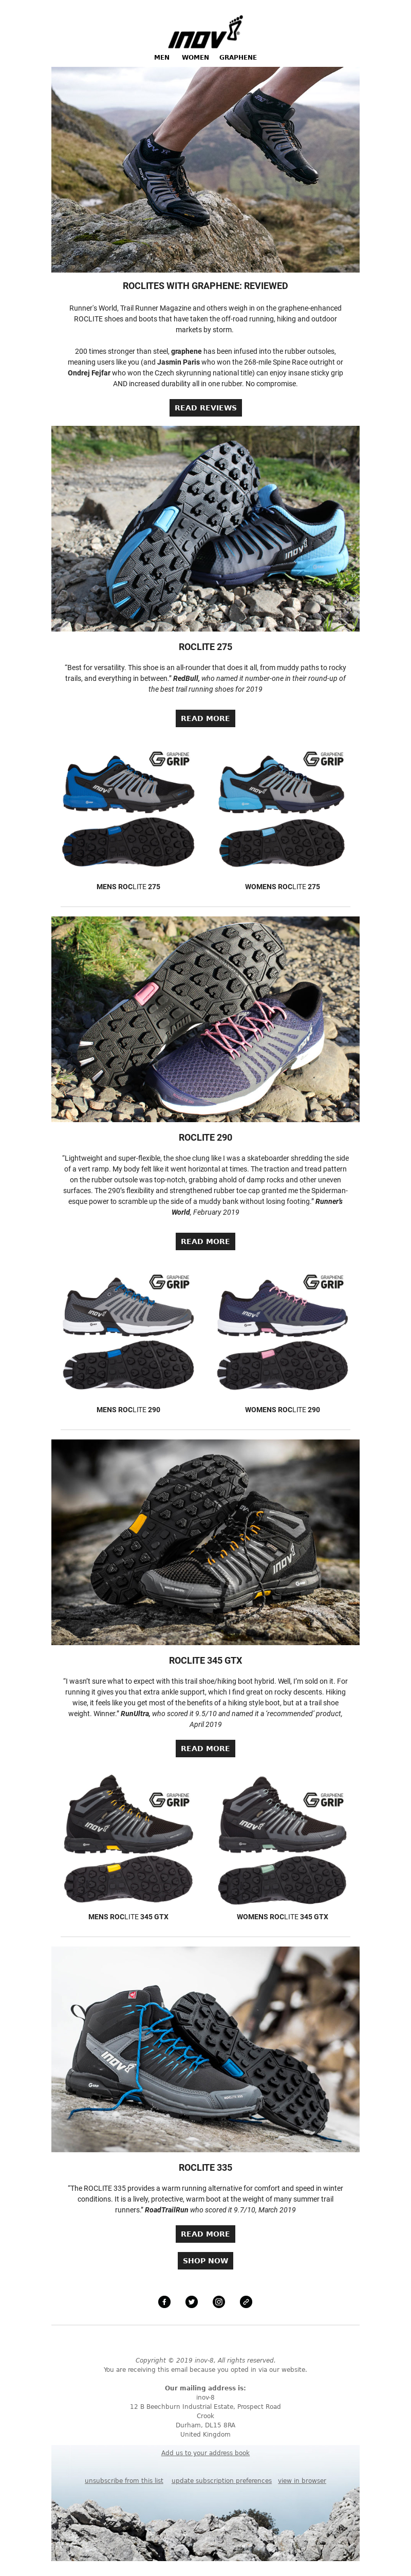 Running email example from inov-8